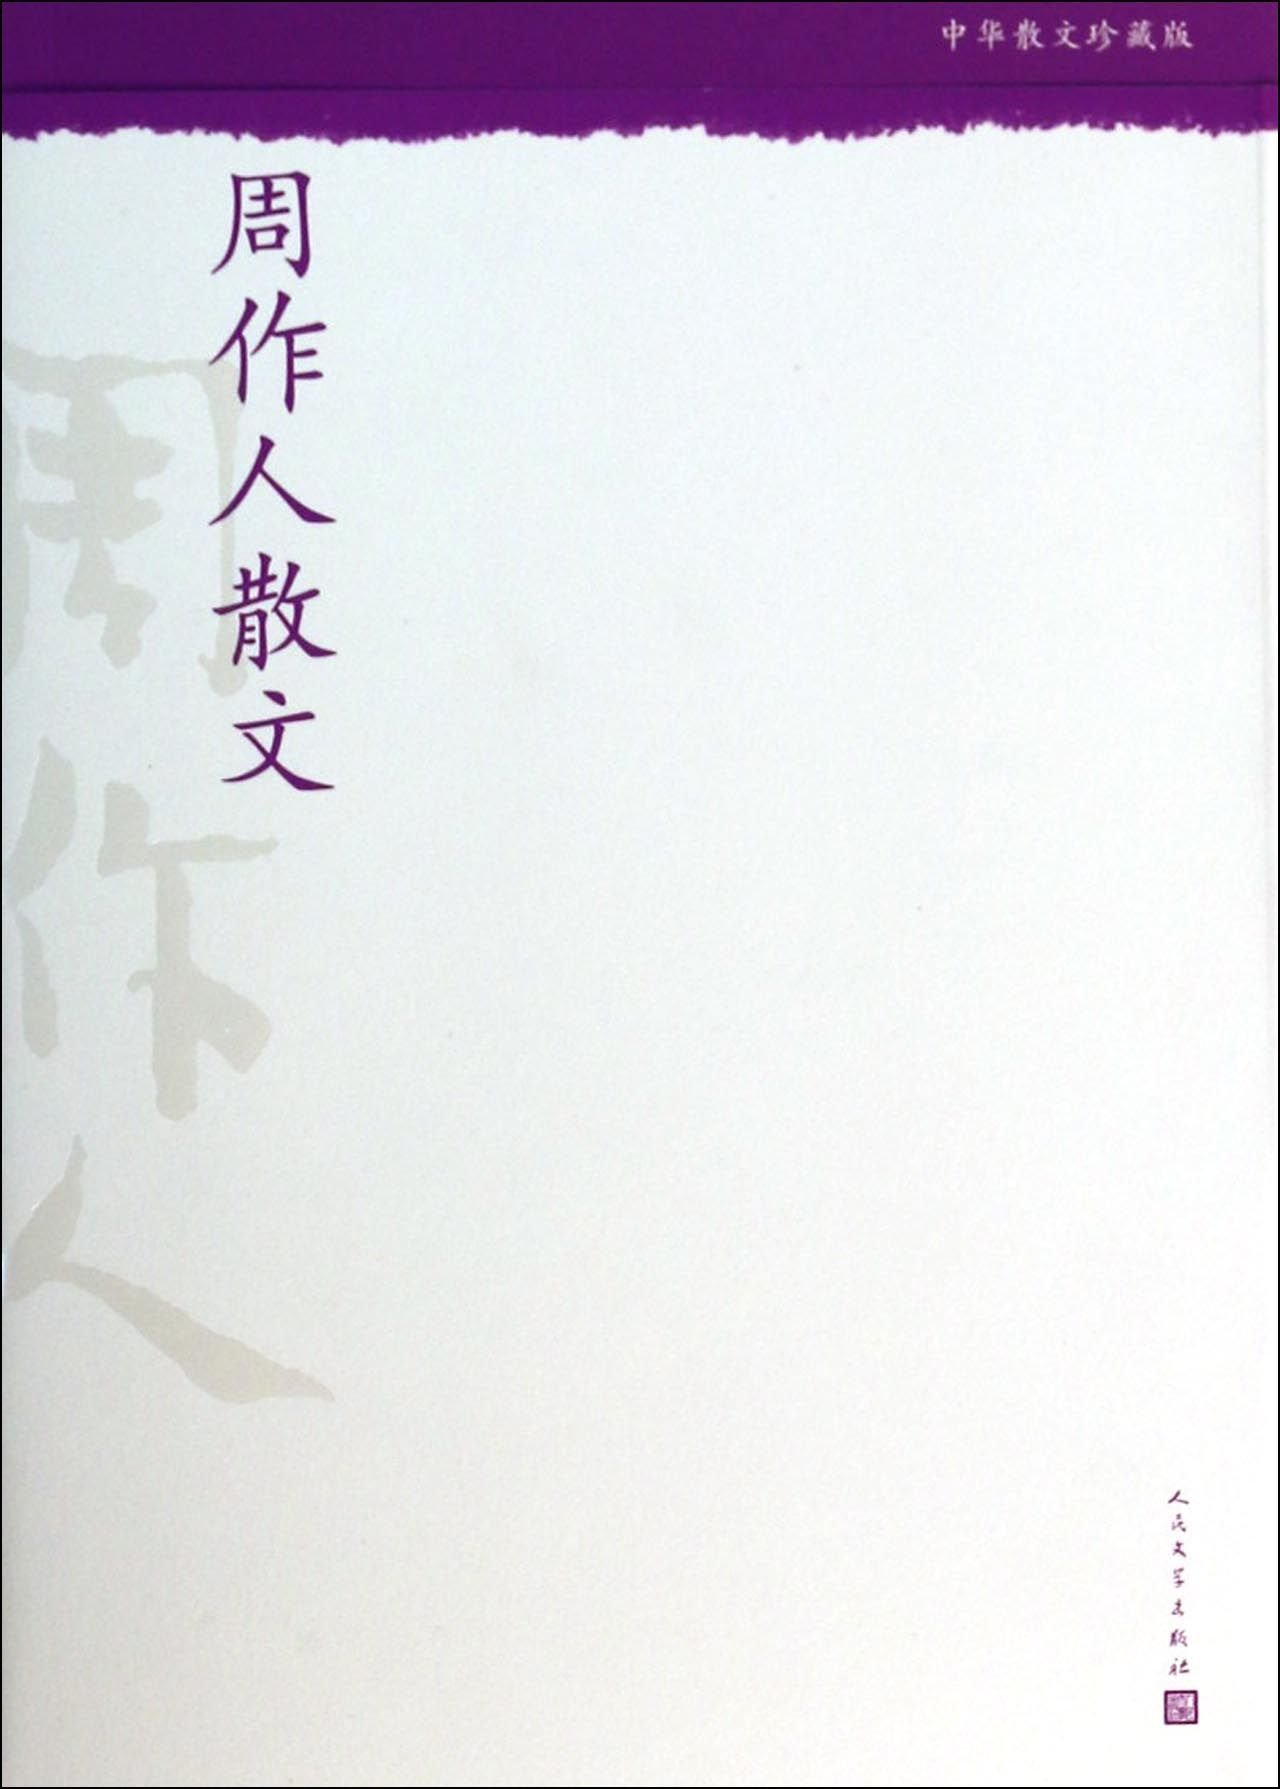 Download China prose Collector's Edition: Zhou Zuoren(Chinese Edition) ePub fb2 ebook